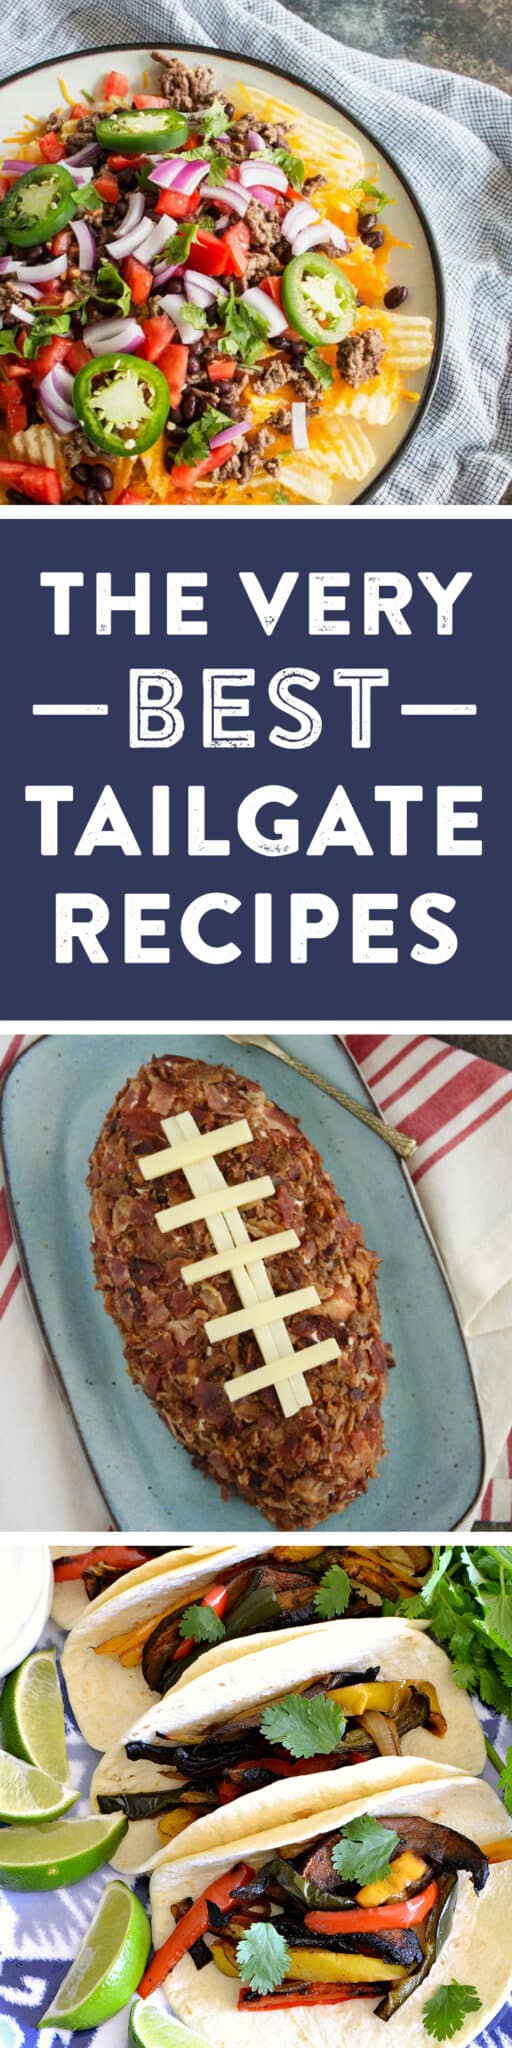 Here's a killer collection of gameday snacks that are sure to make your tailgating delicious and unforgettable!